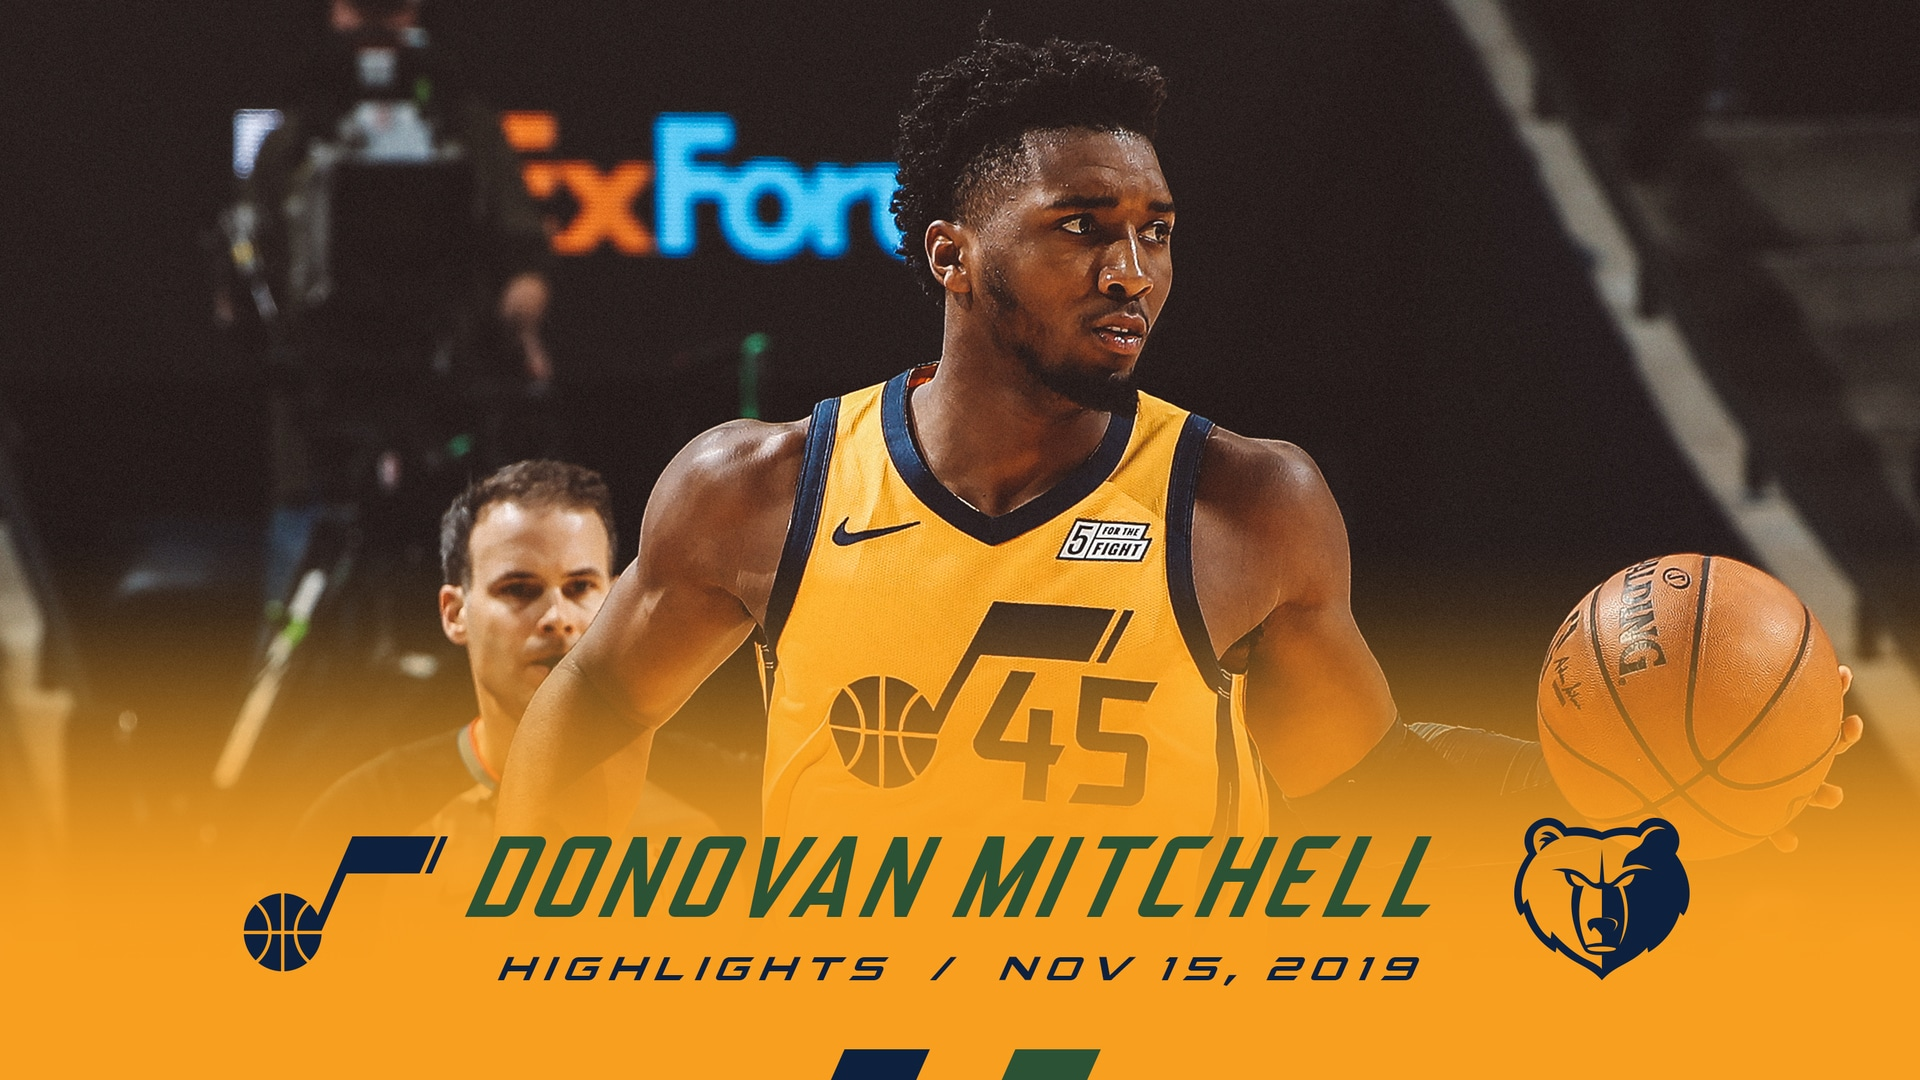 Highlights: Donovan Mitchell—29 points, 9 rebounds